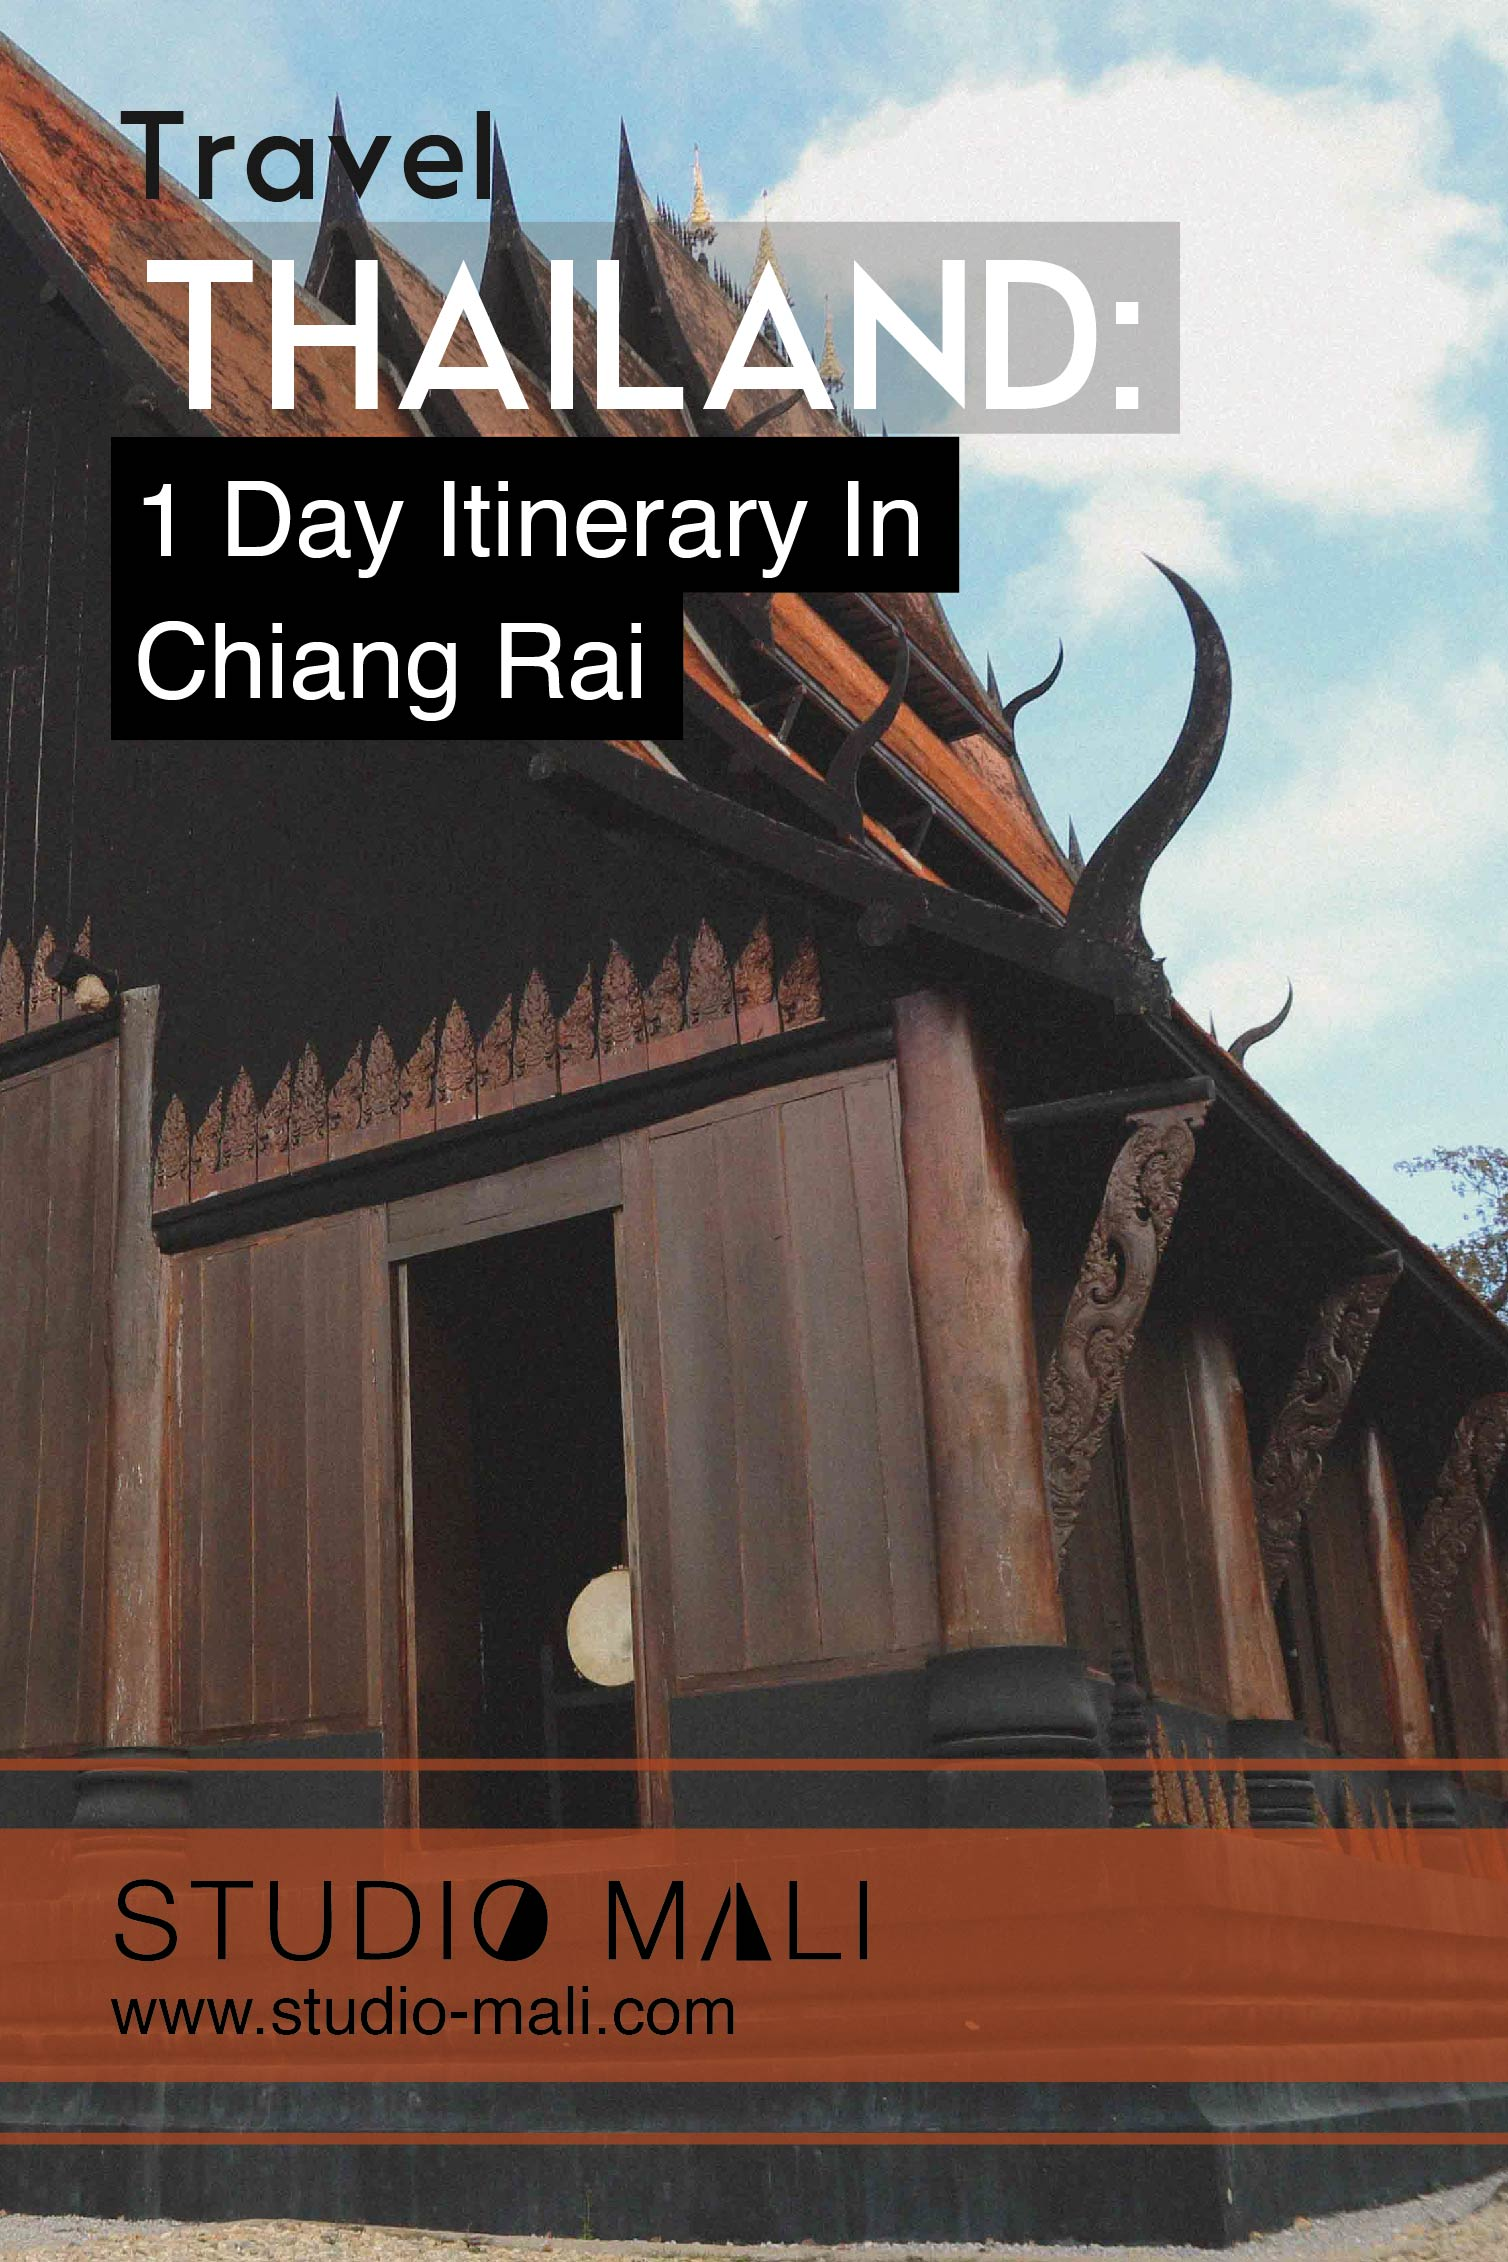 Thailand - 1 Day Itinerary In Chiang Rai, by Studio Mali